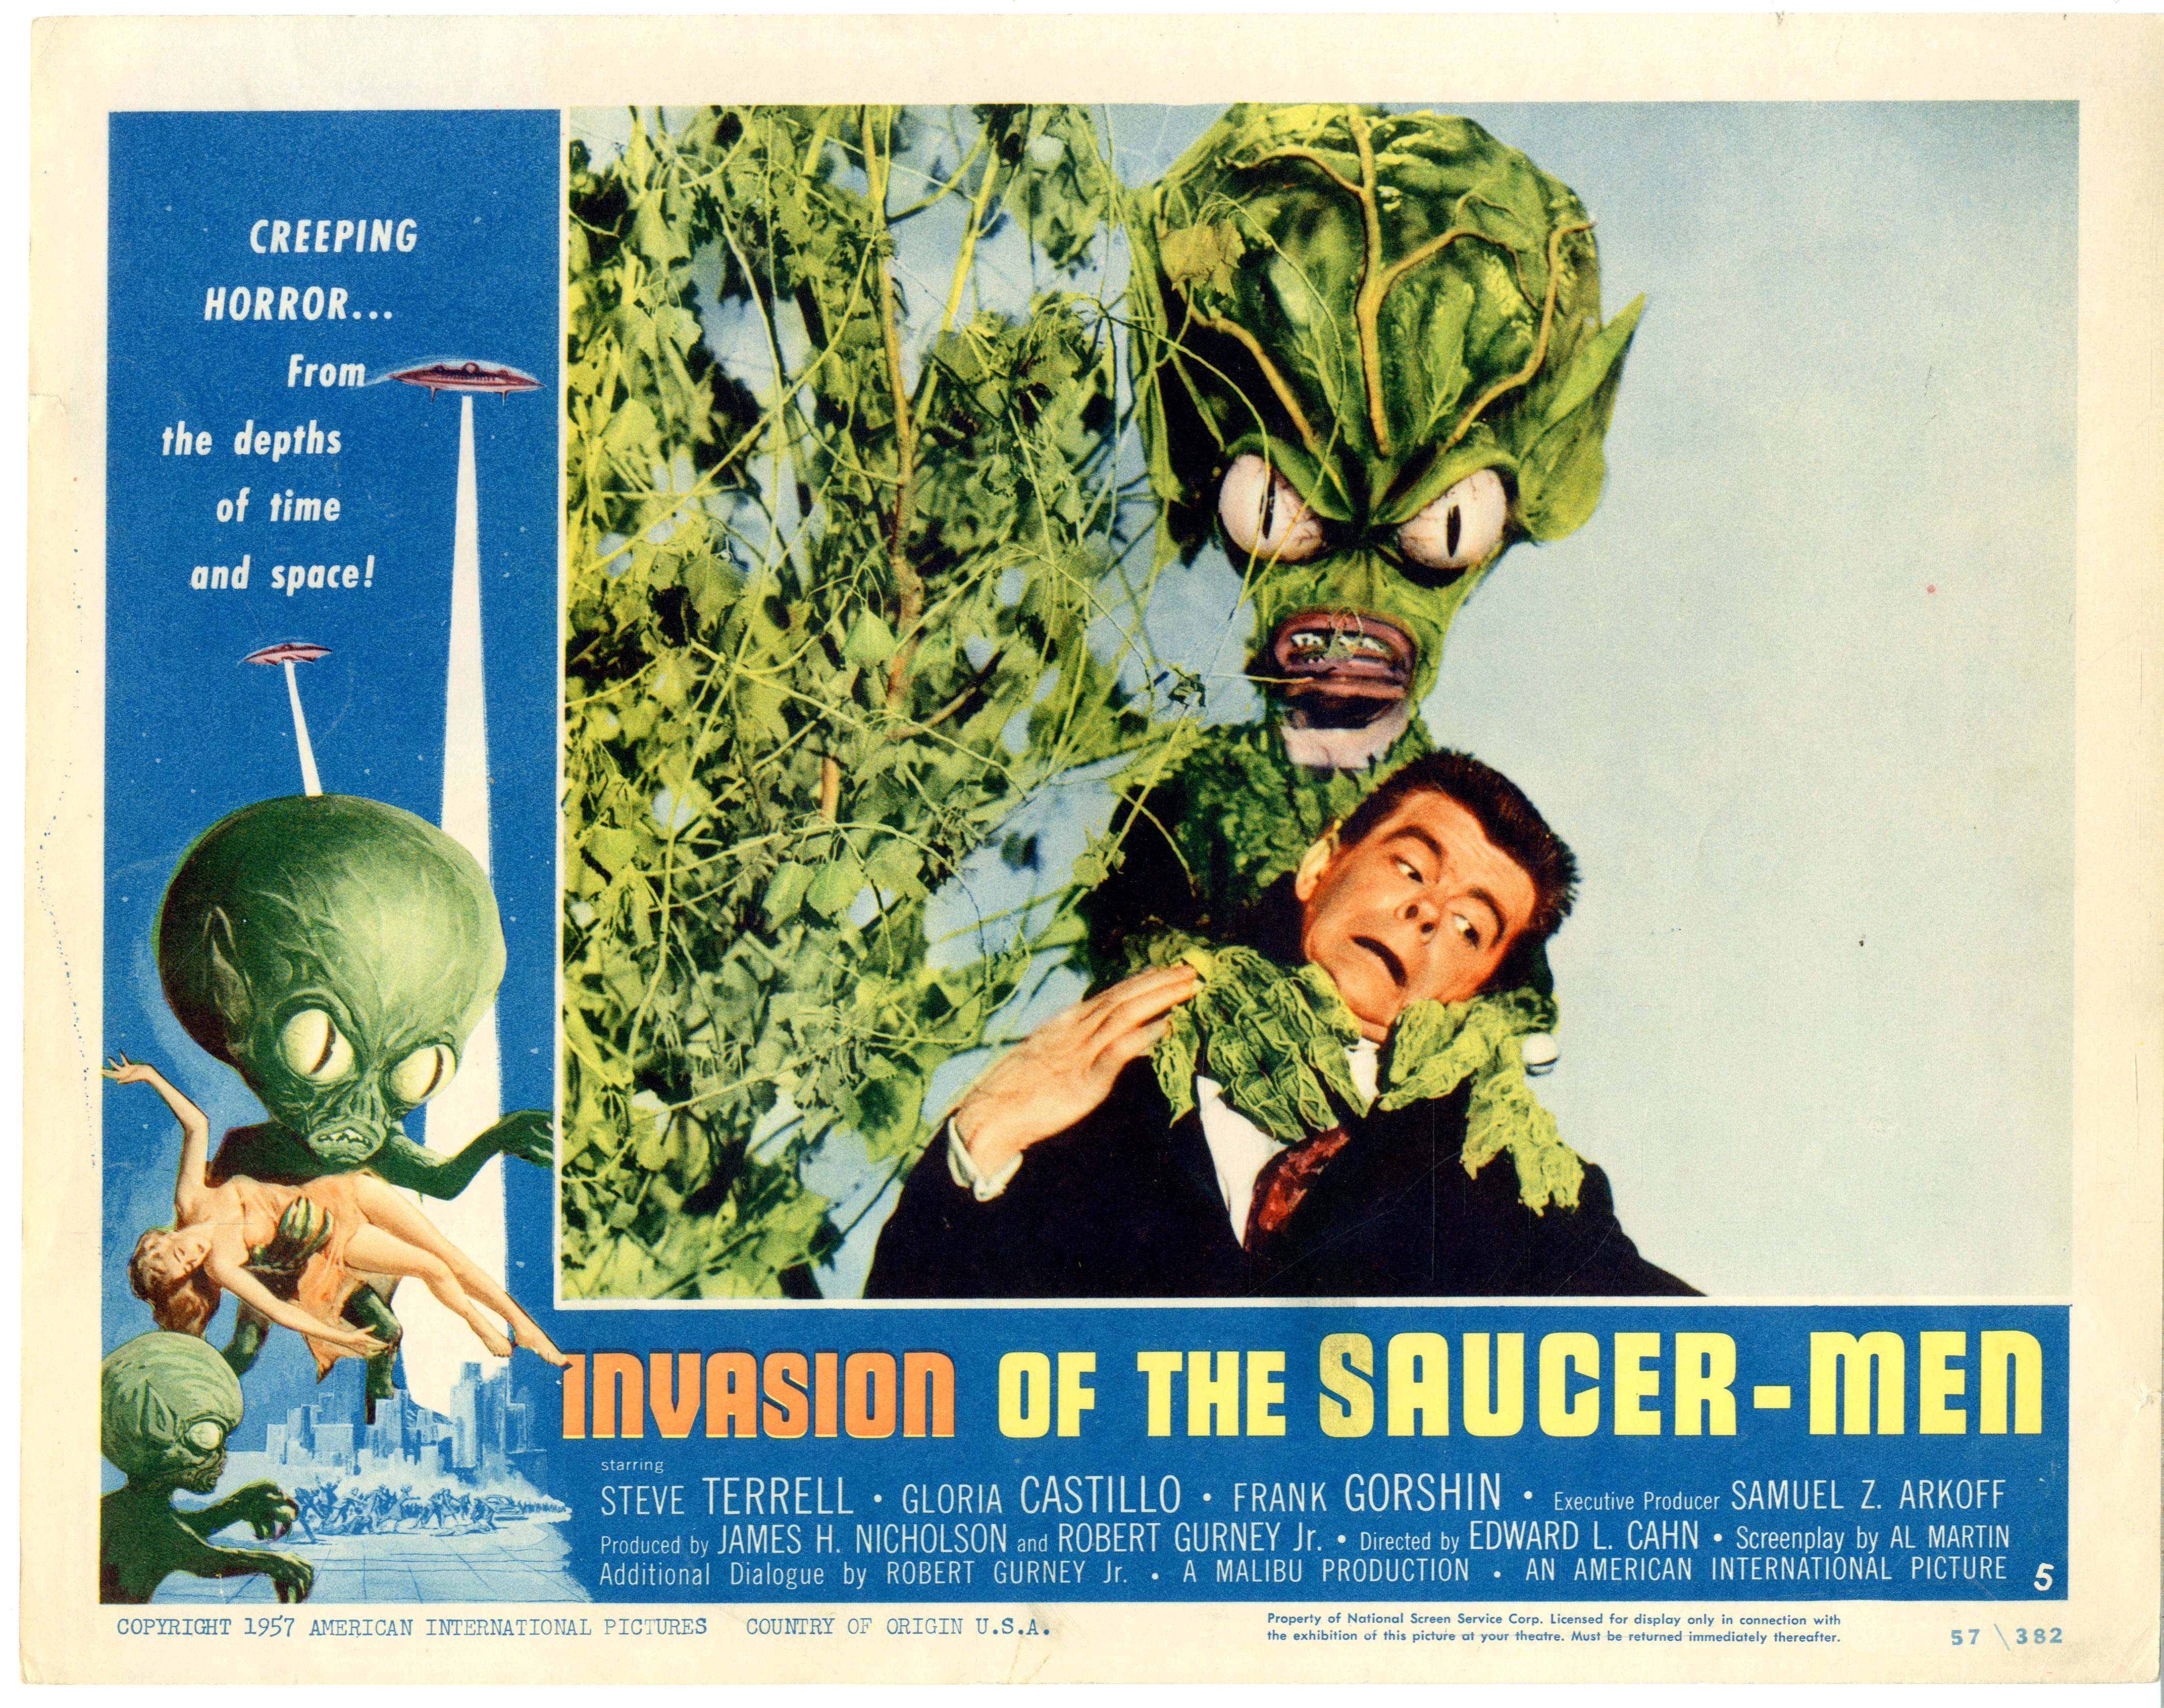 Invasion Of The Saucer-men 1957 - 22007